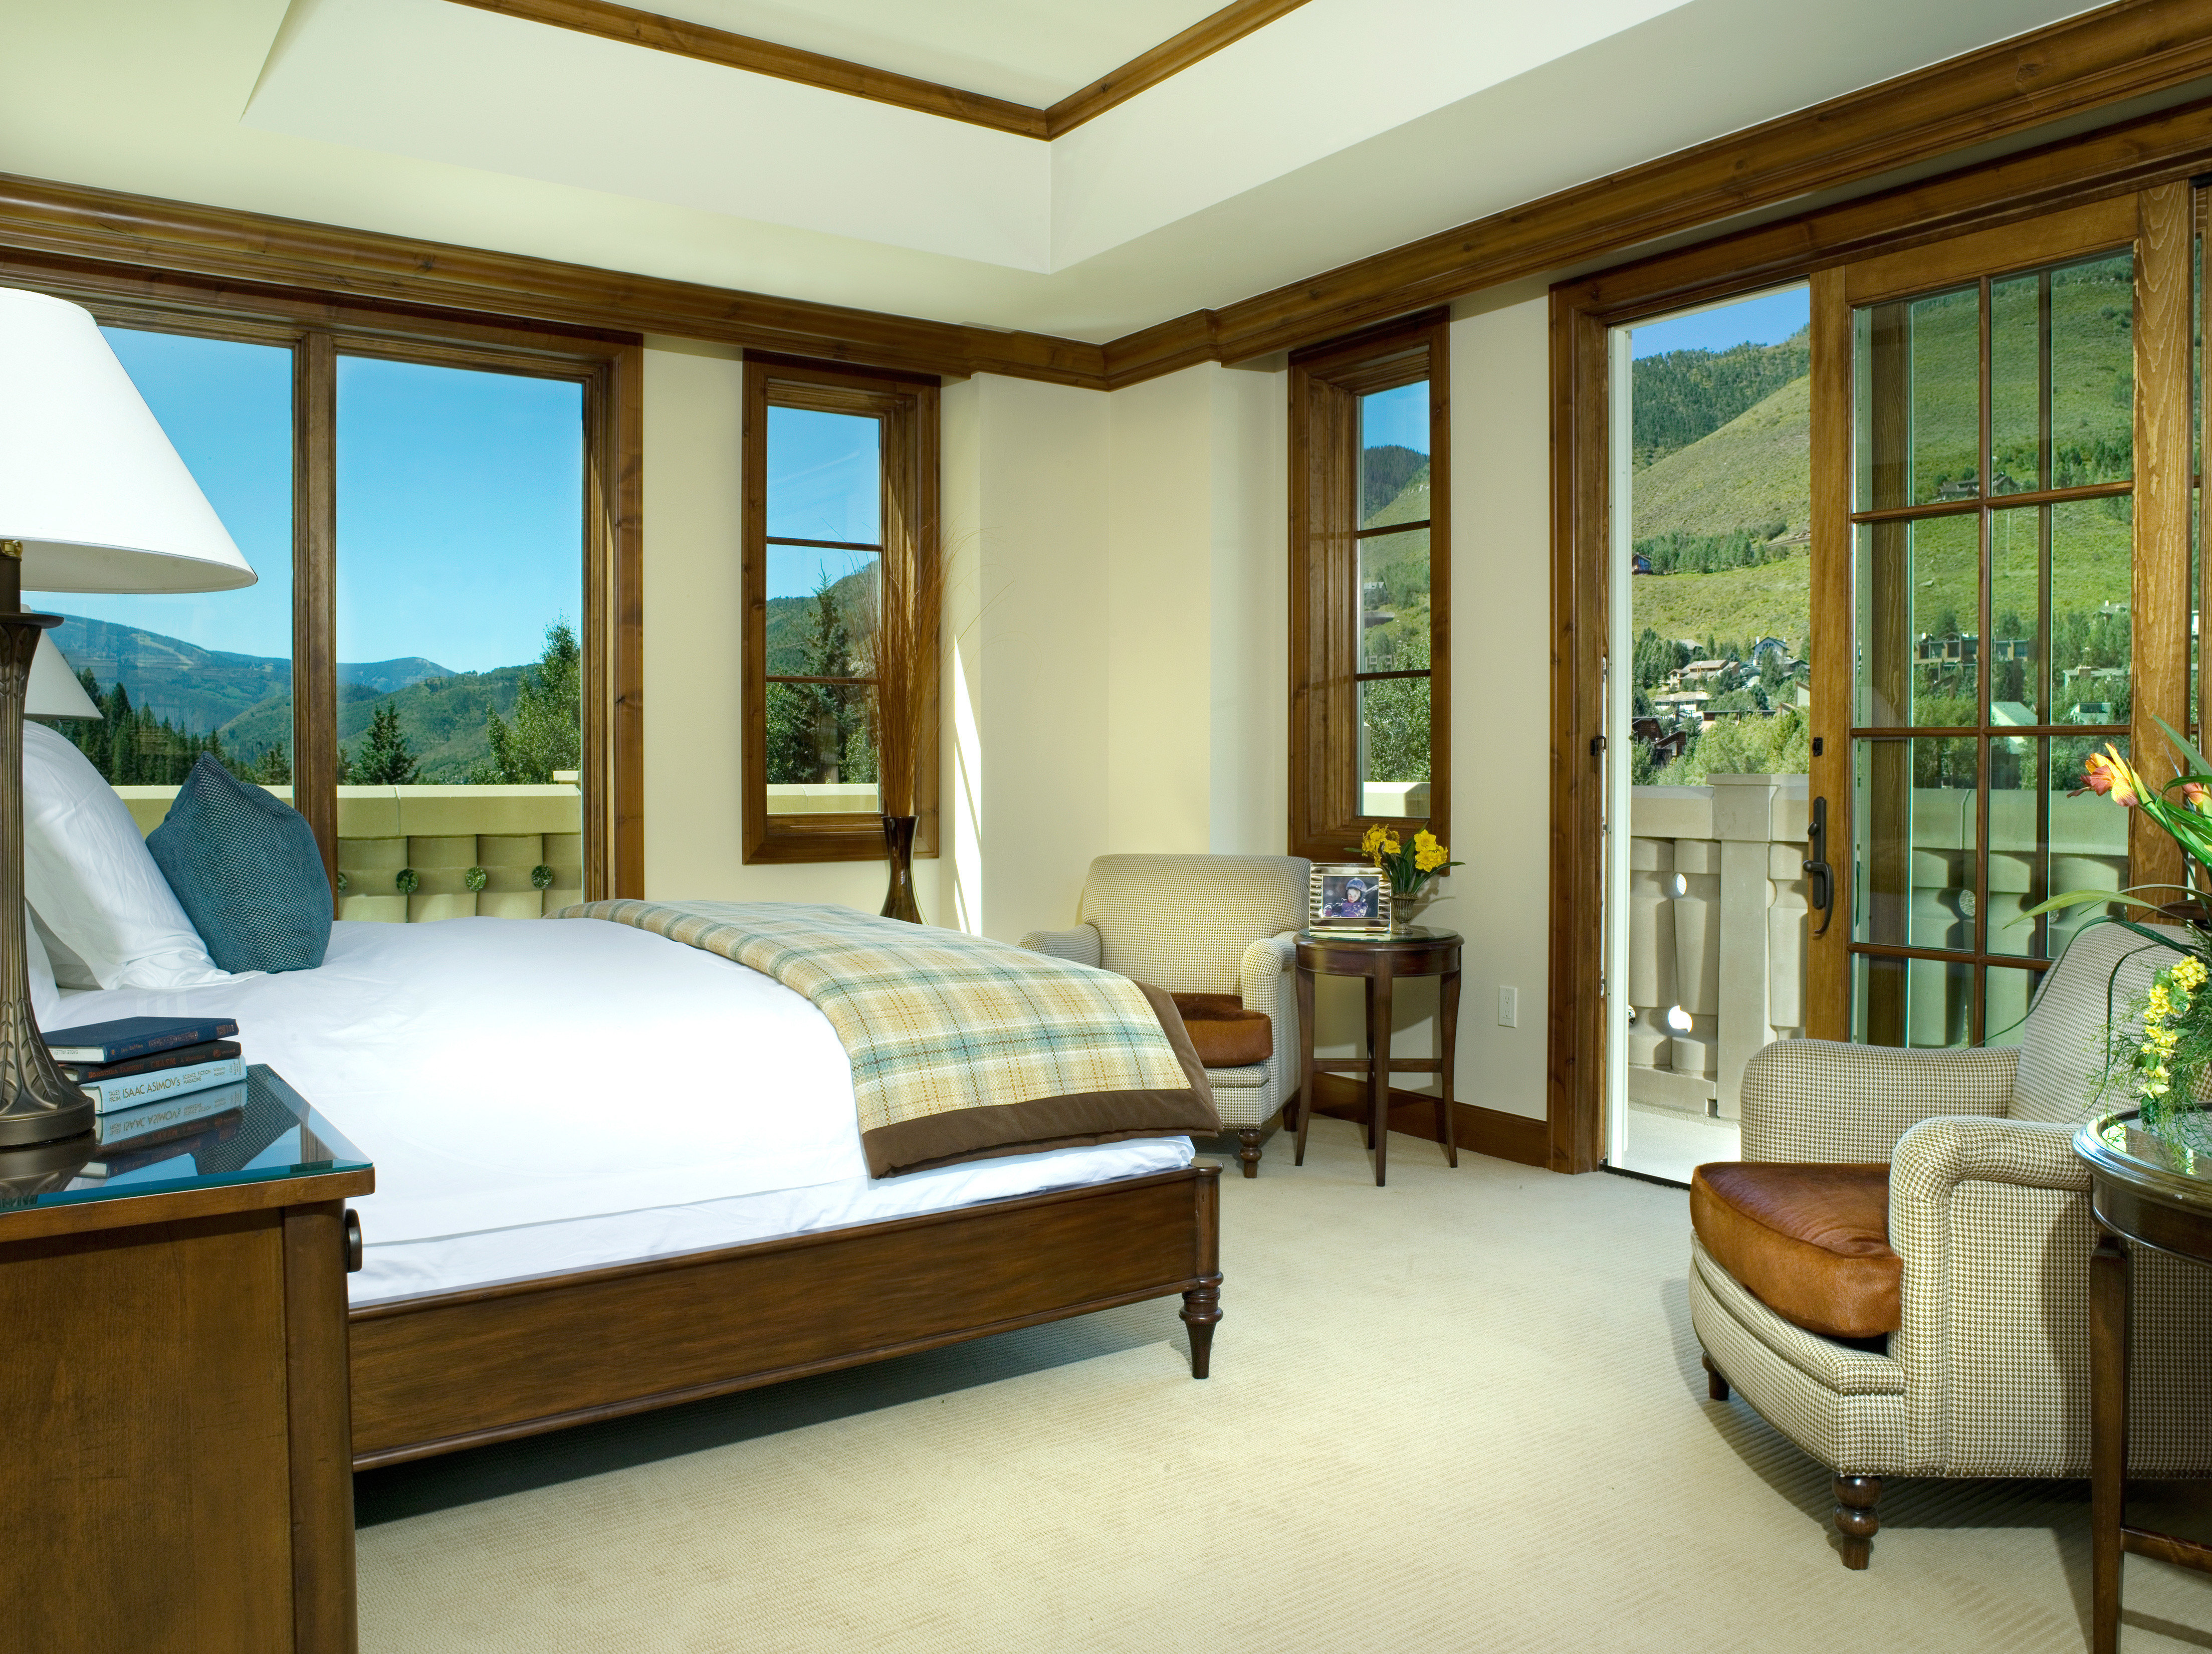 Bedroom Resort Scenic views property home house condominium living room hardwood Suite Villa cottage mansion nice